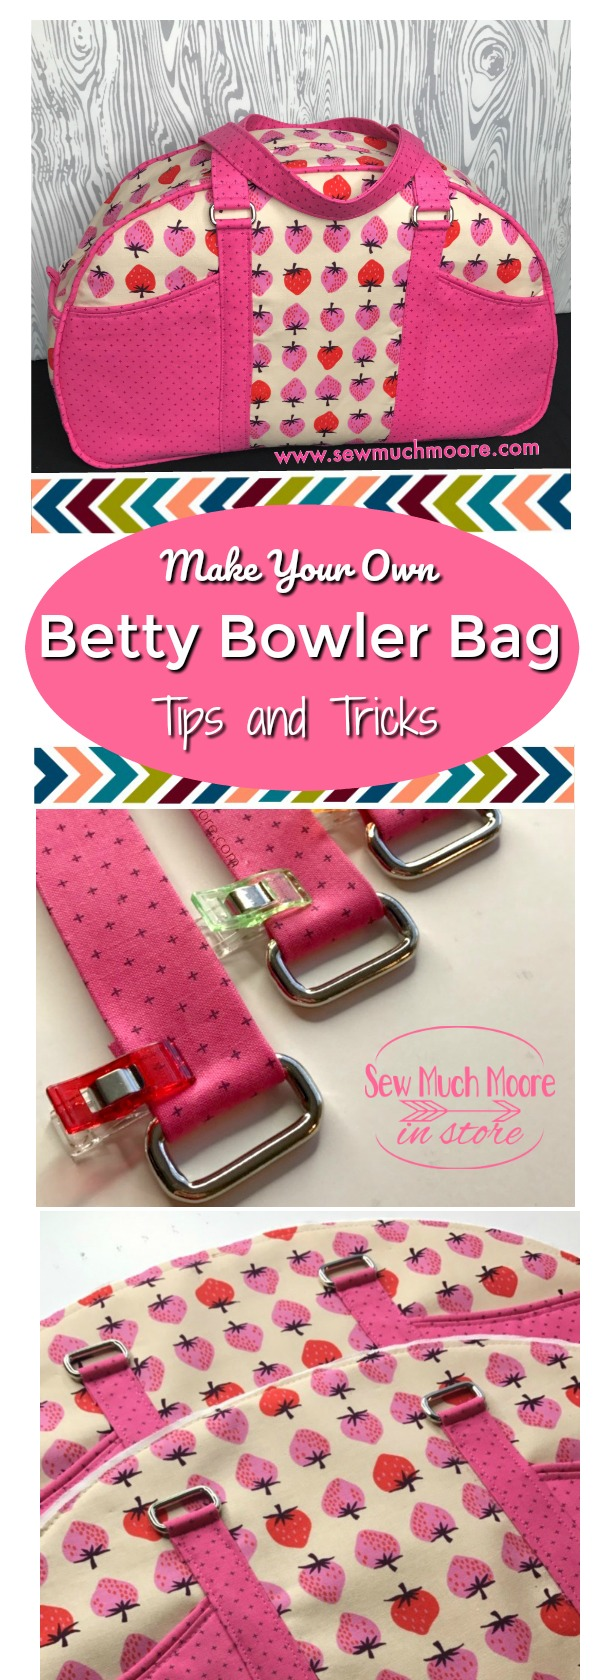 Betty Bowler Bag by Swoon Pattern - Pinterest Pin